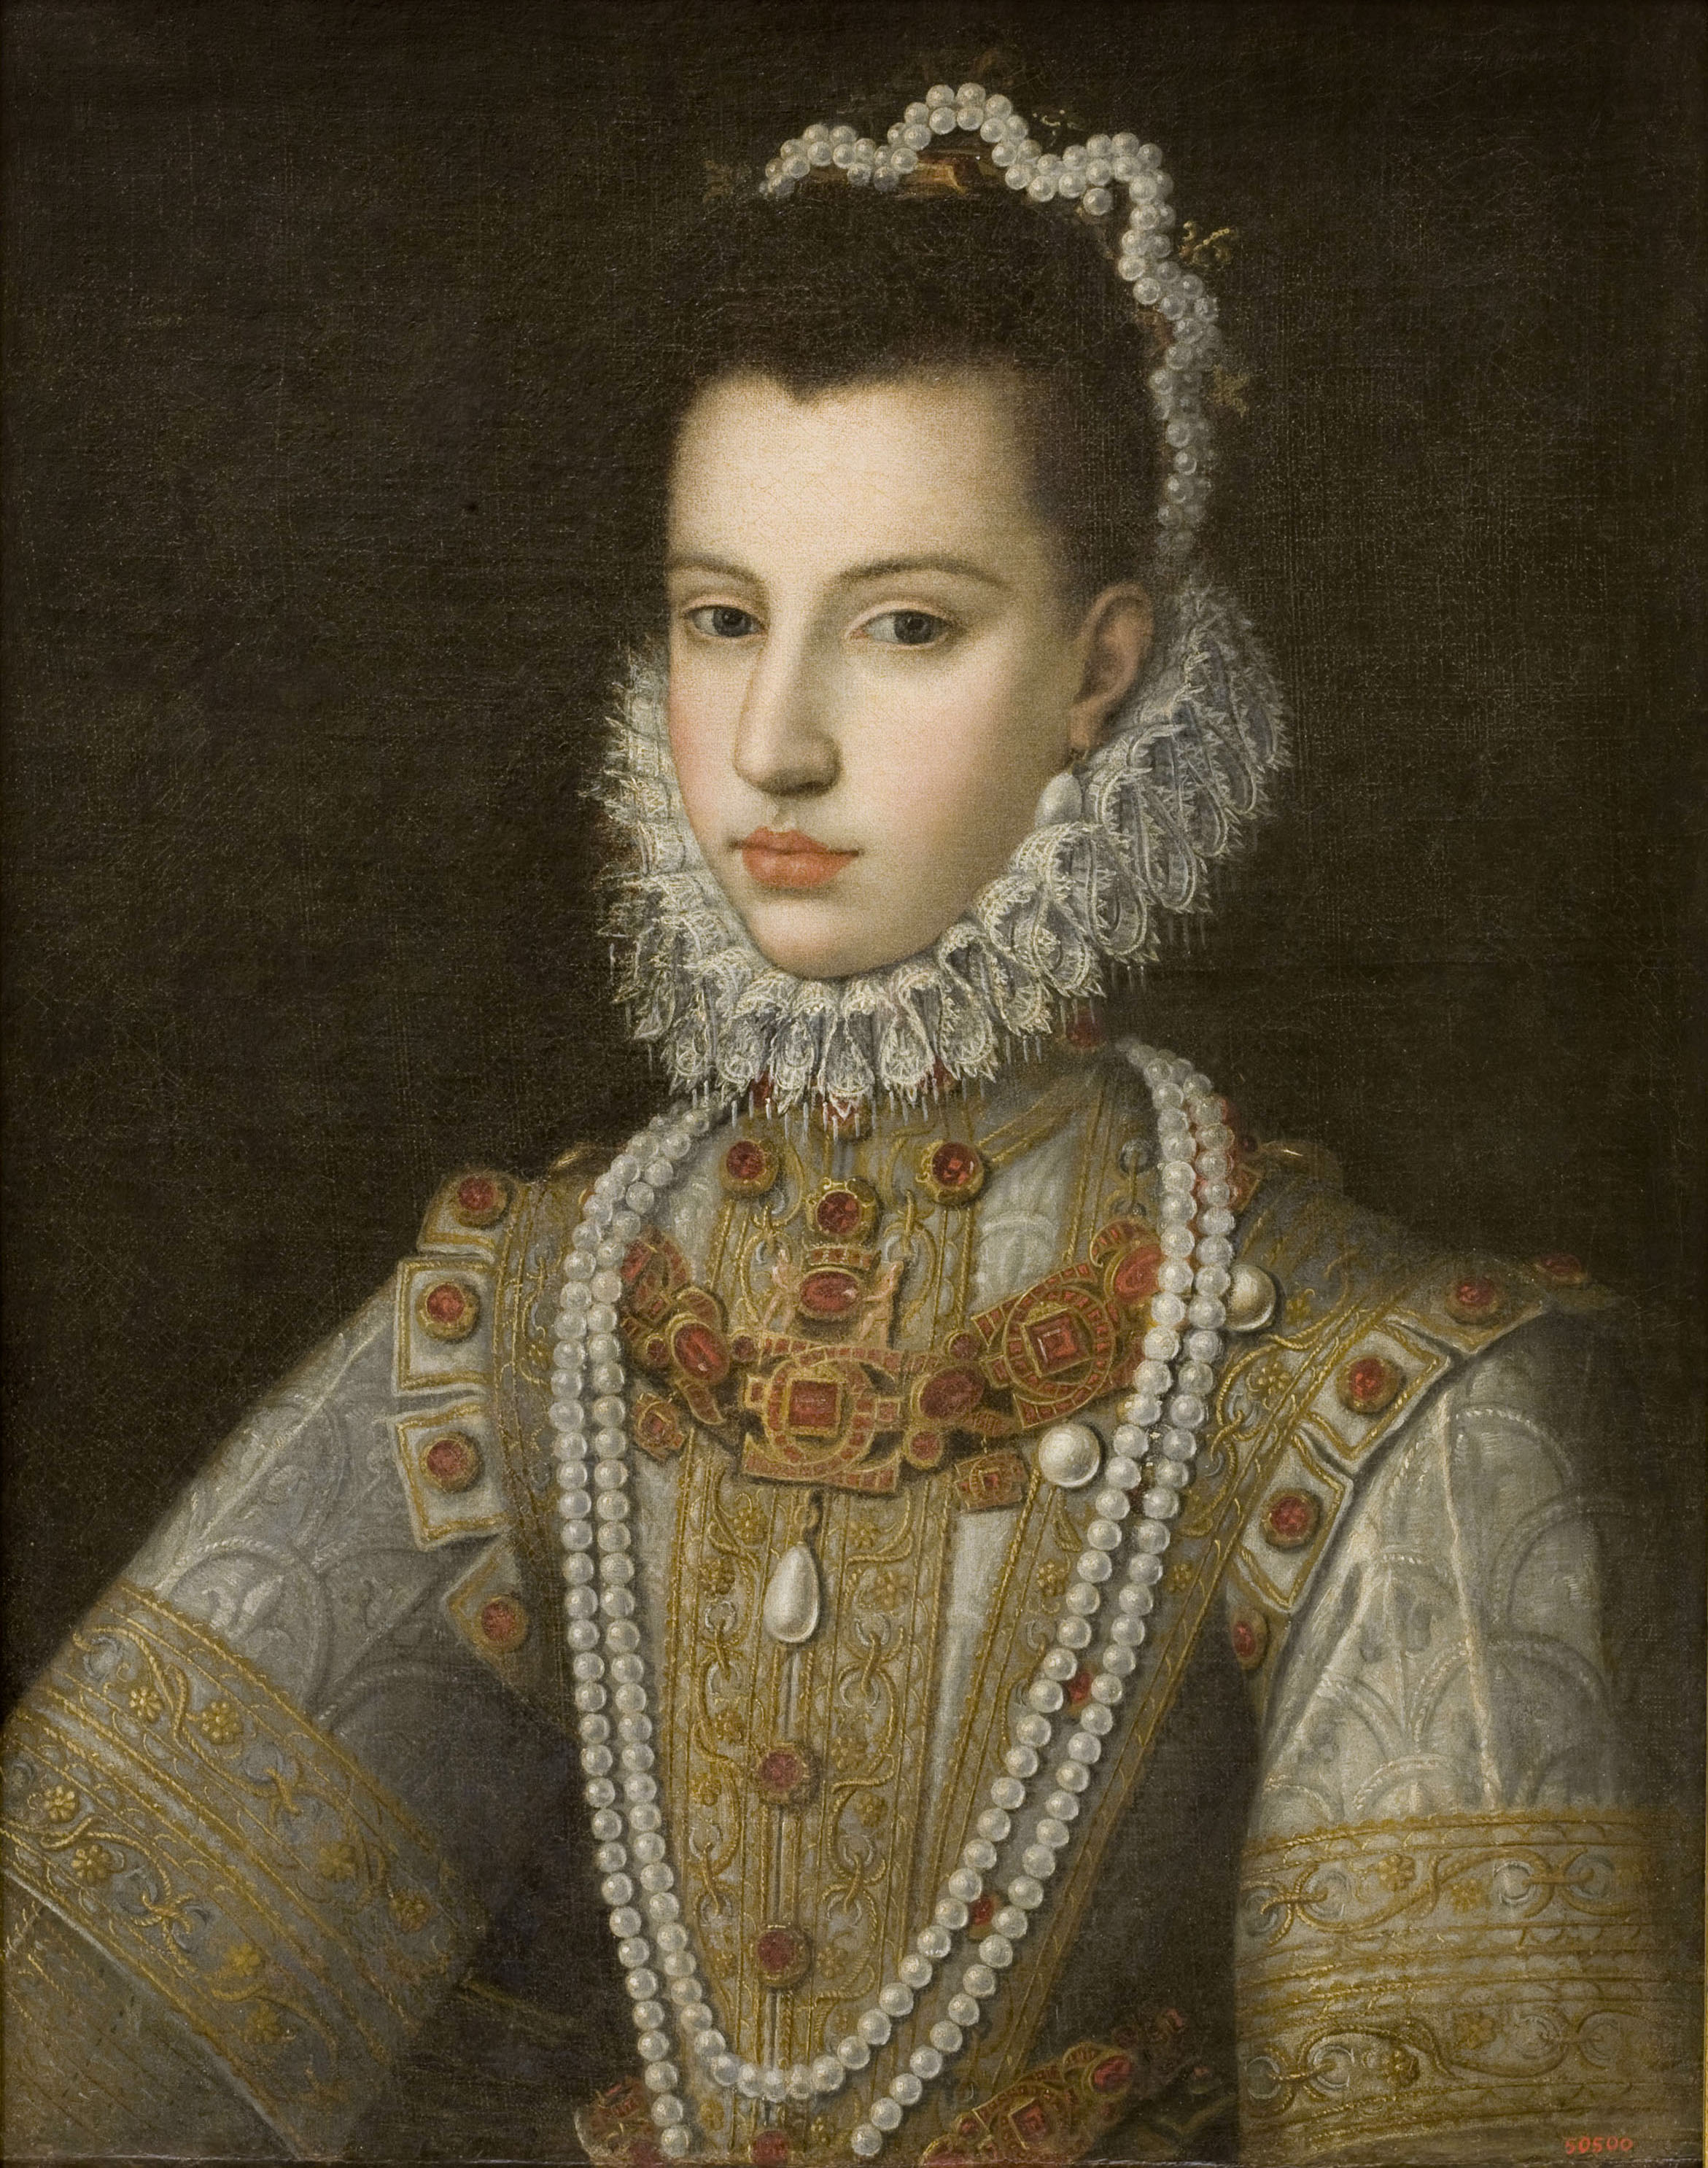 Jan Kraeck, Portrait of the Infanta Catherine Michelle, 1584-1585